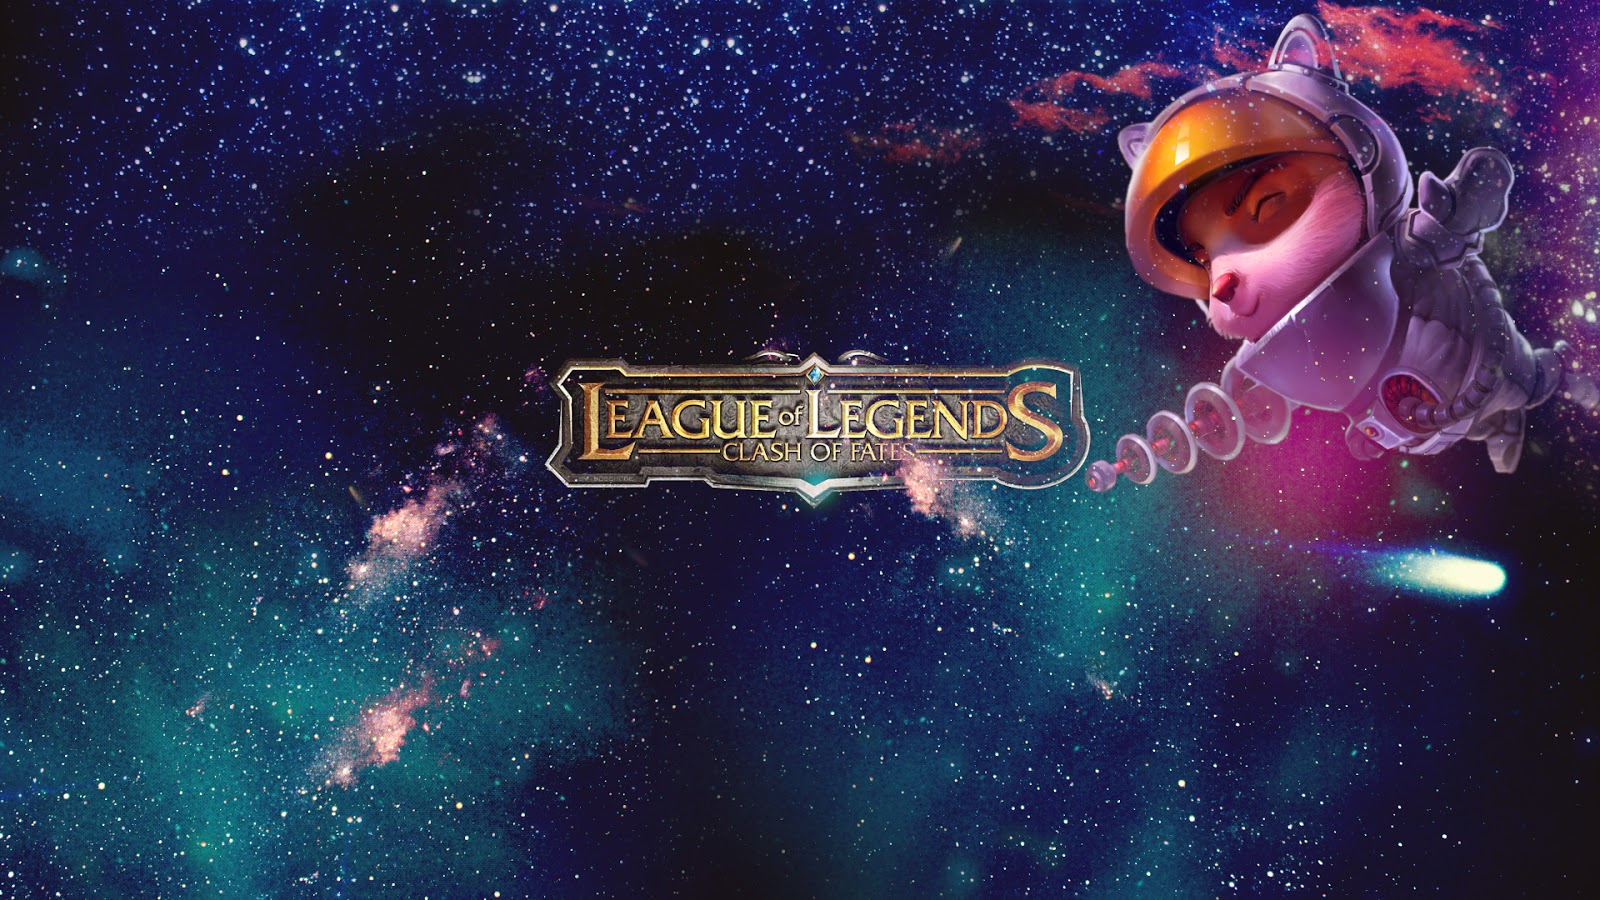 I Quit Wallpaper Hd Teemo League Of Legends Wallpaper Teemo Desktop Wallpaper